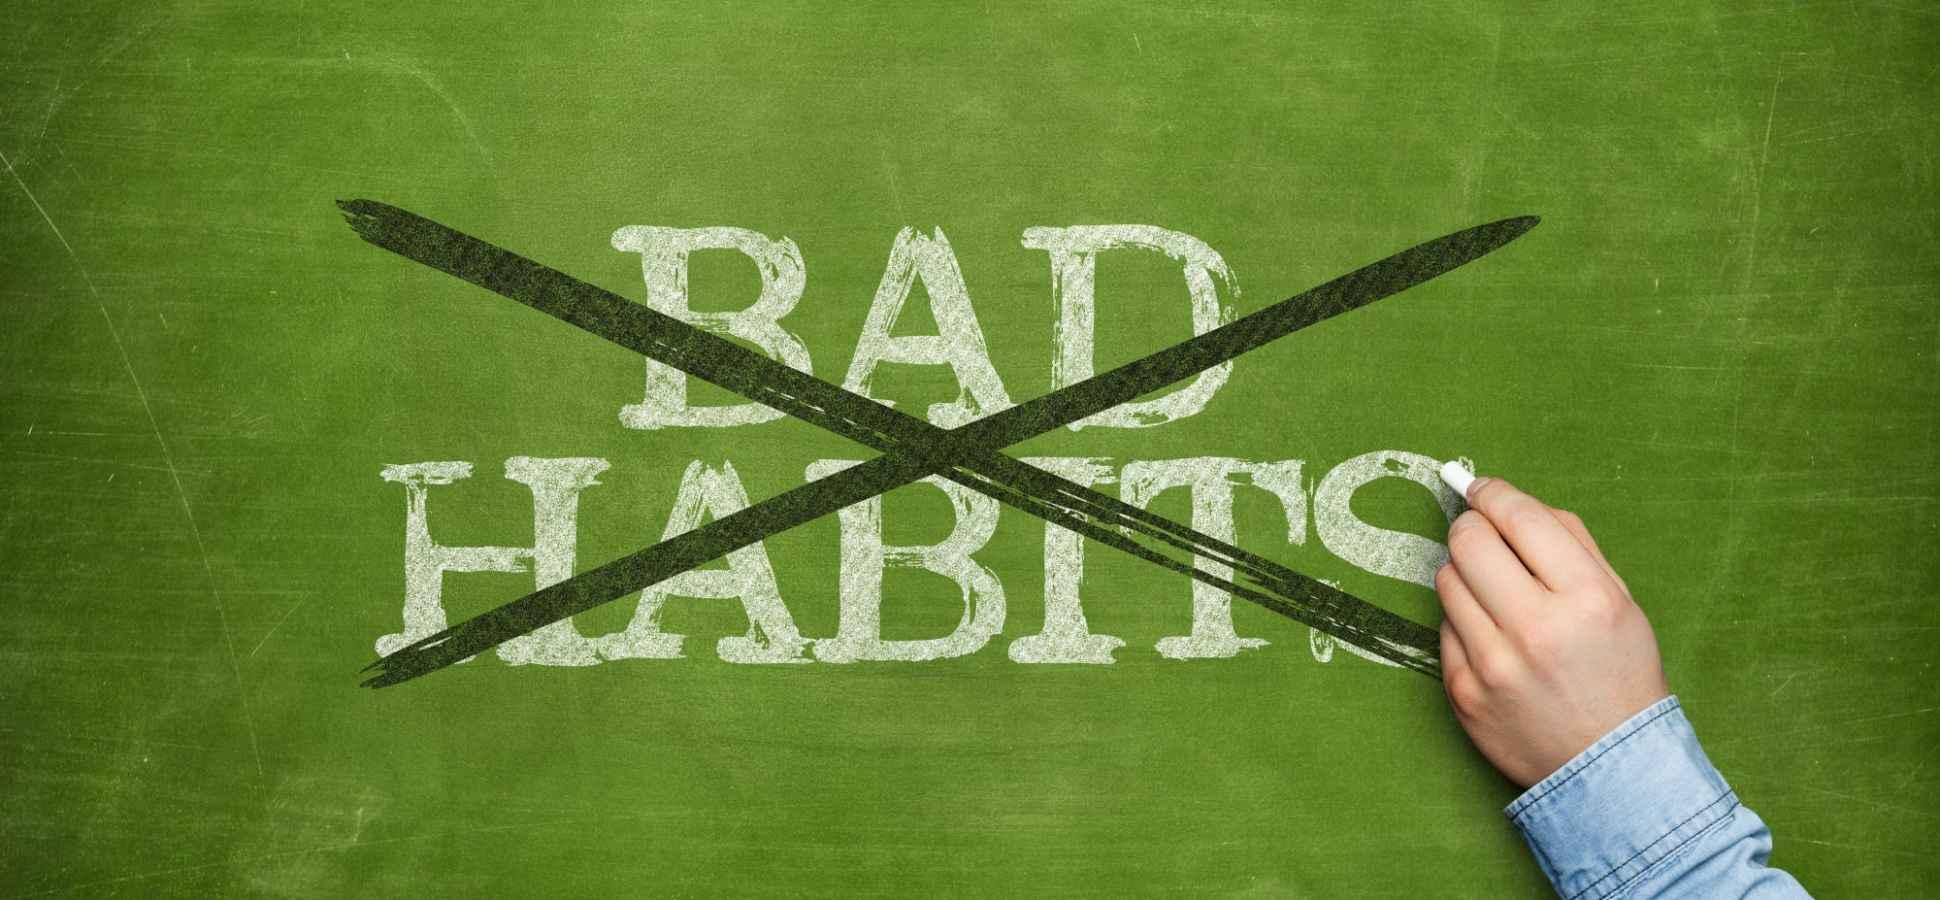 3 Habits You Need to Crush to Be Successful